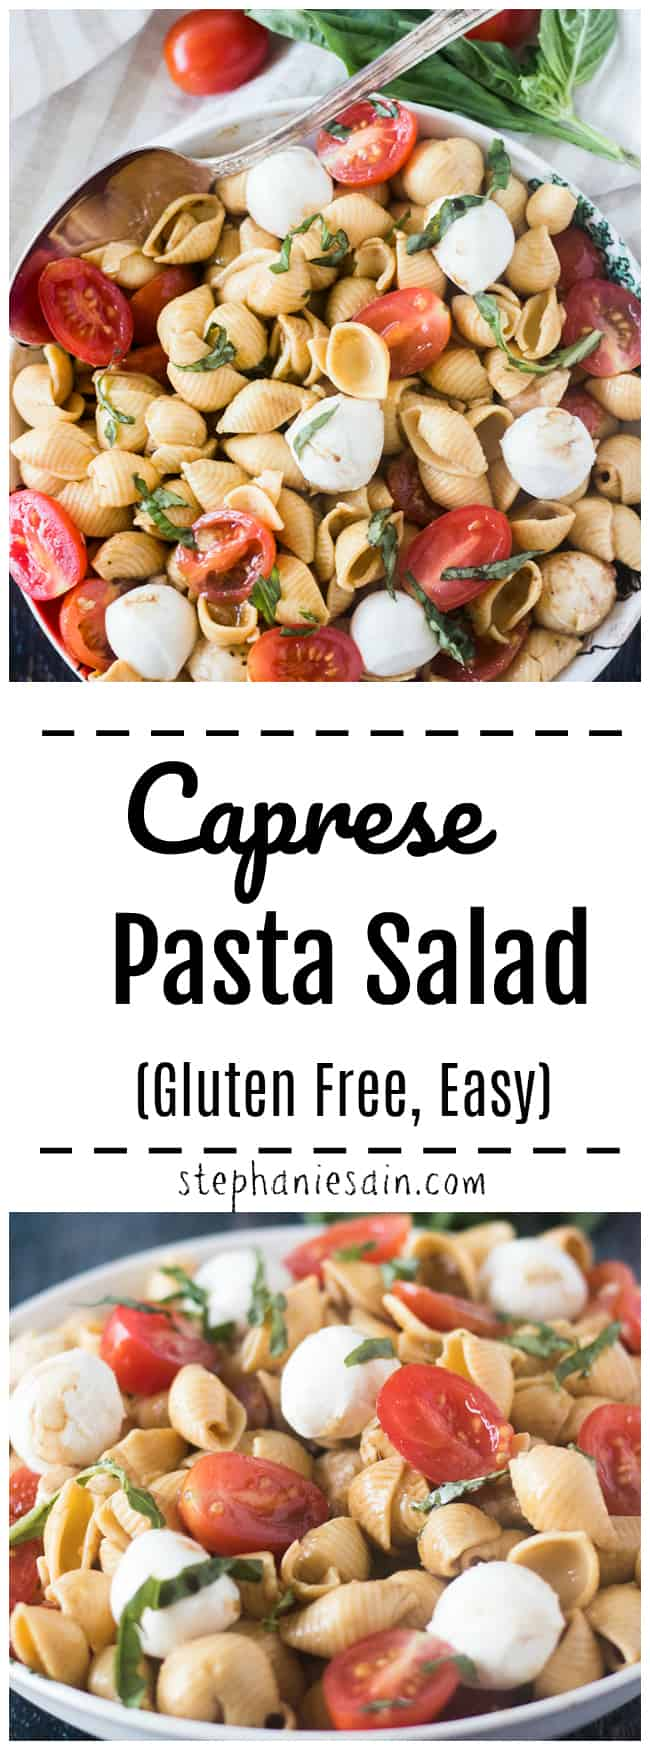 This Caprese Pasta salad is super easy to throw together and is the perfect make ahead salad for any occasion. Good for potlucks, gatherings or to serve to that special someone. Comes together in about 20 minutes. Gluten Free.